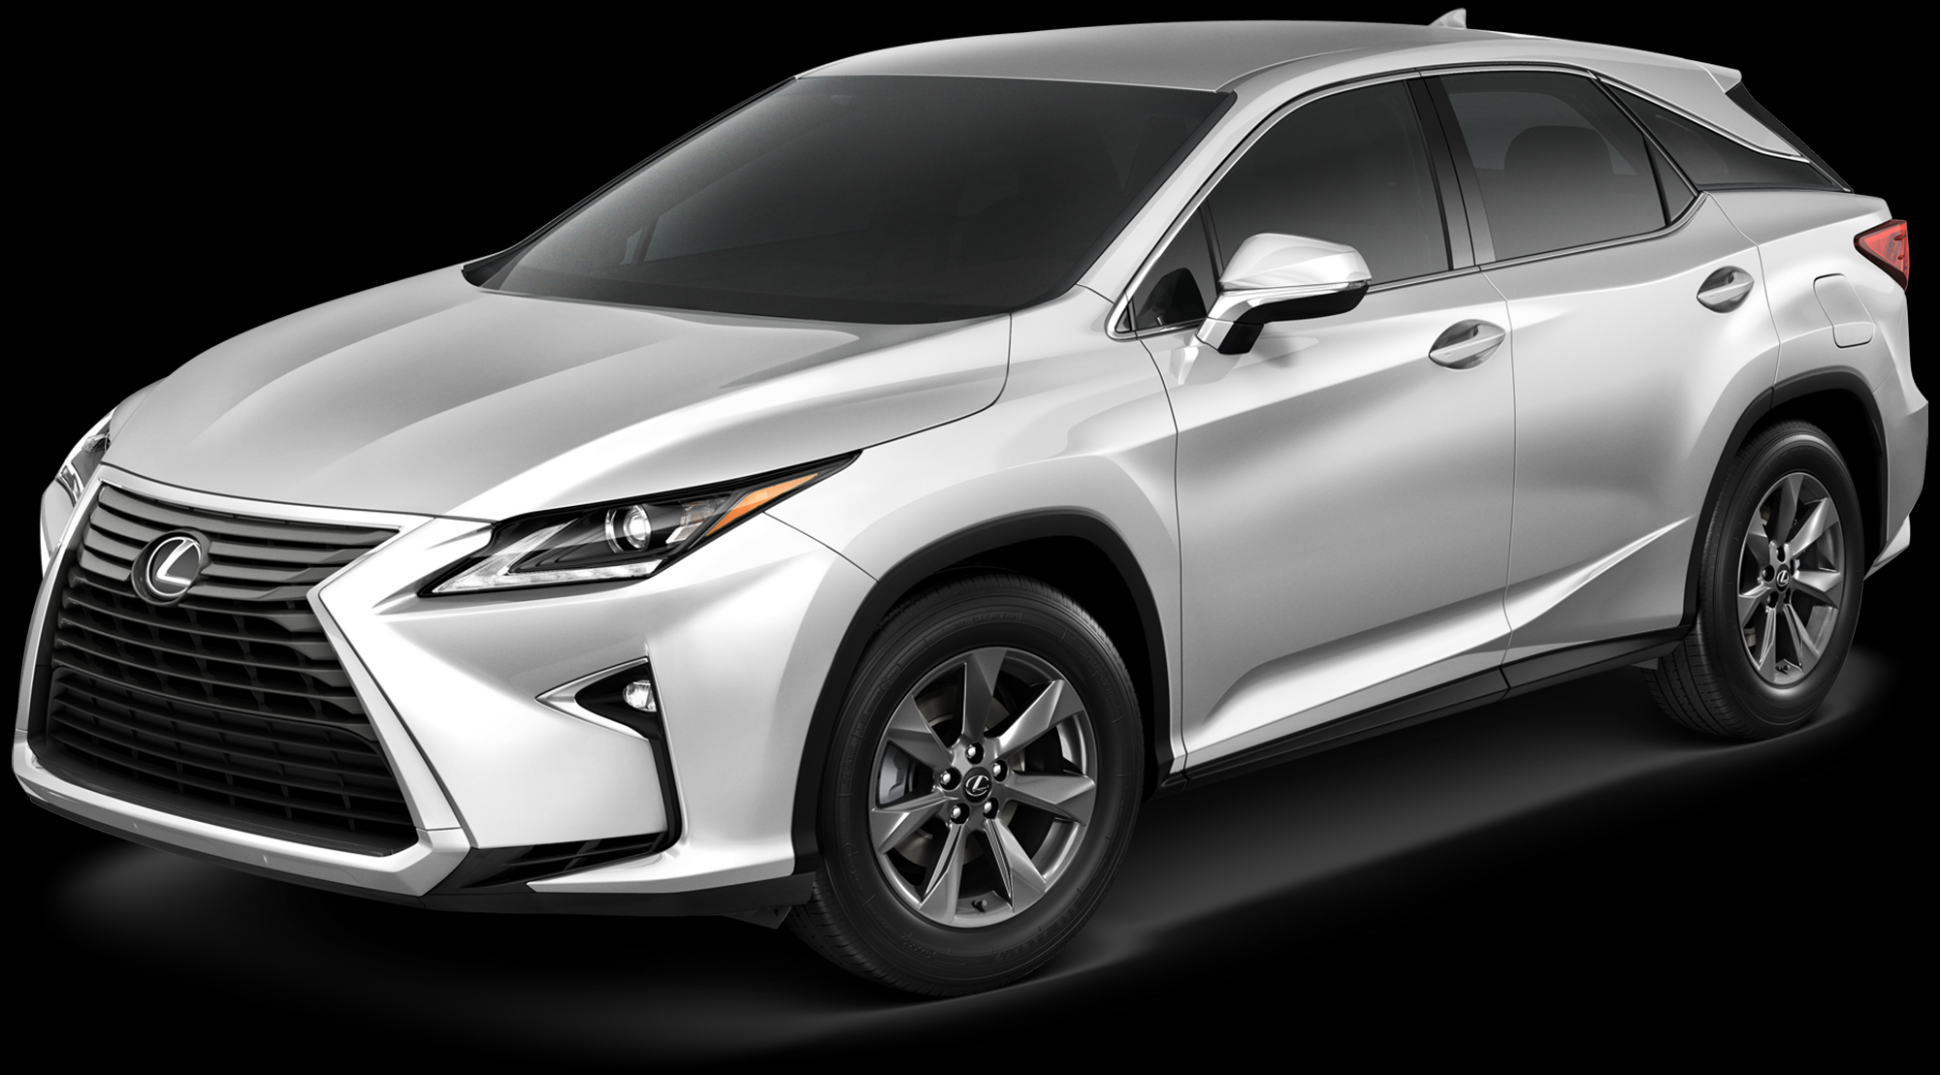 9 Lexus RX 9L Incentives, Specials & Offers in Dallas TX